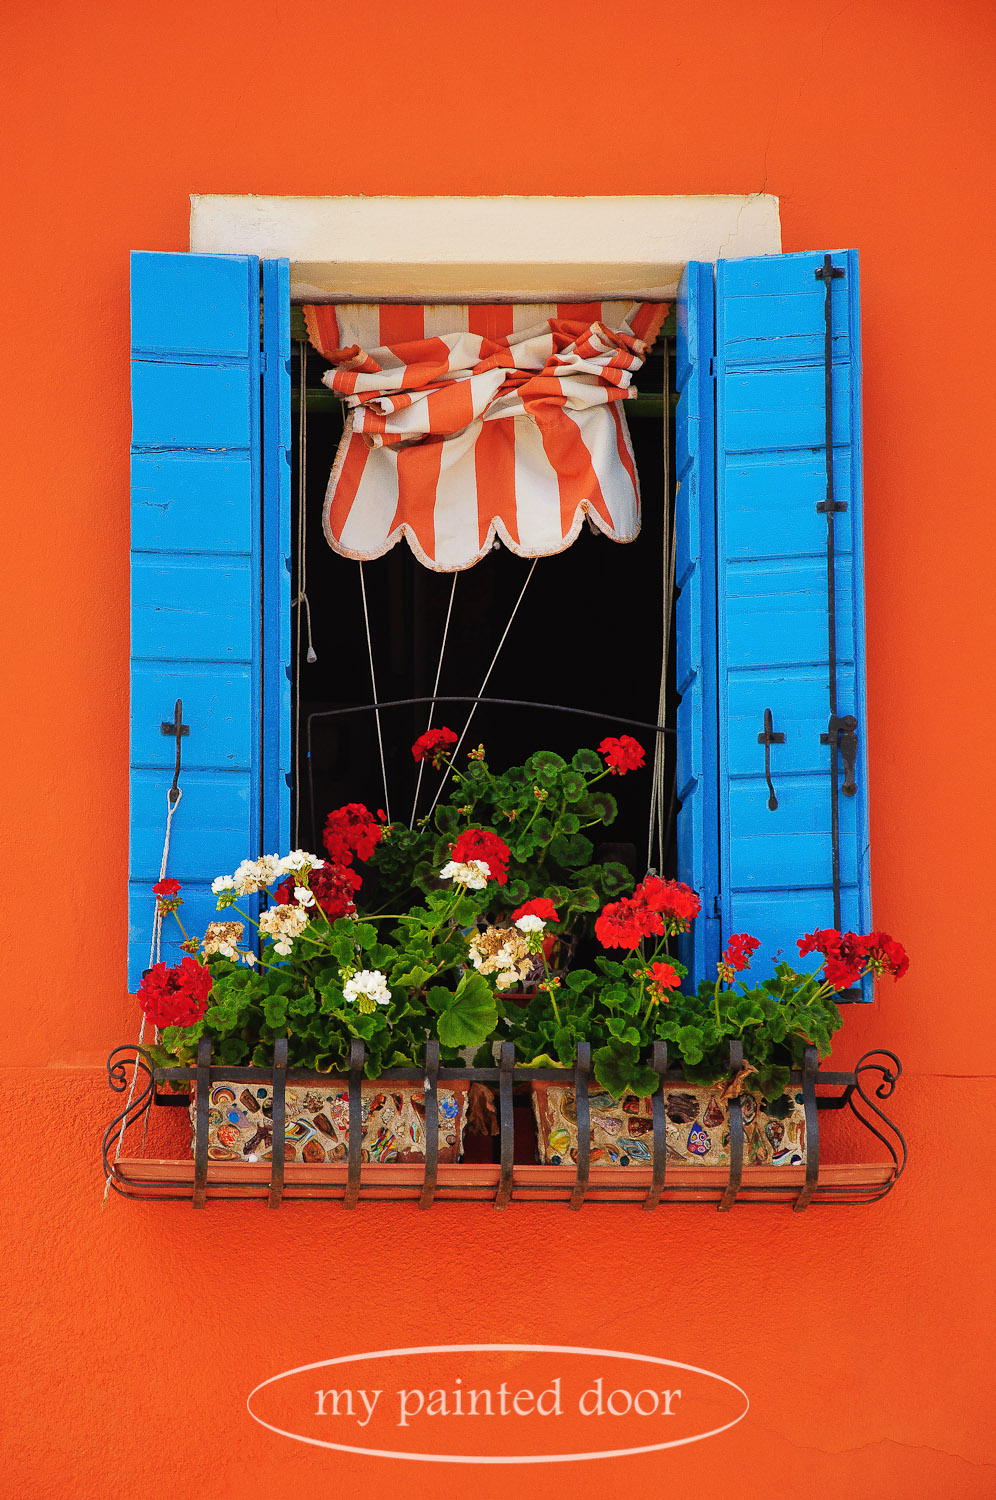 Colourful window box and shutters in Burano, Italy.